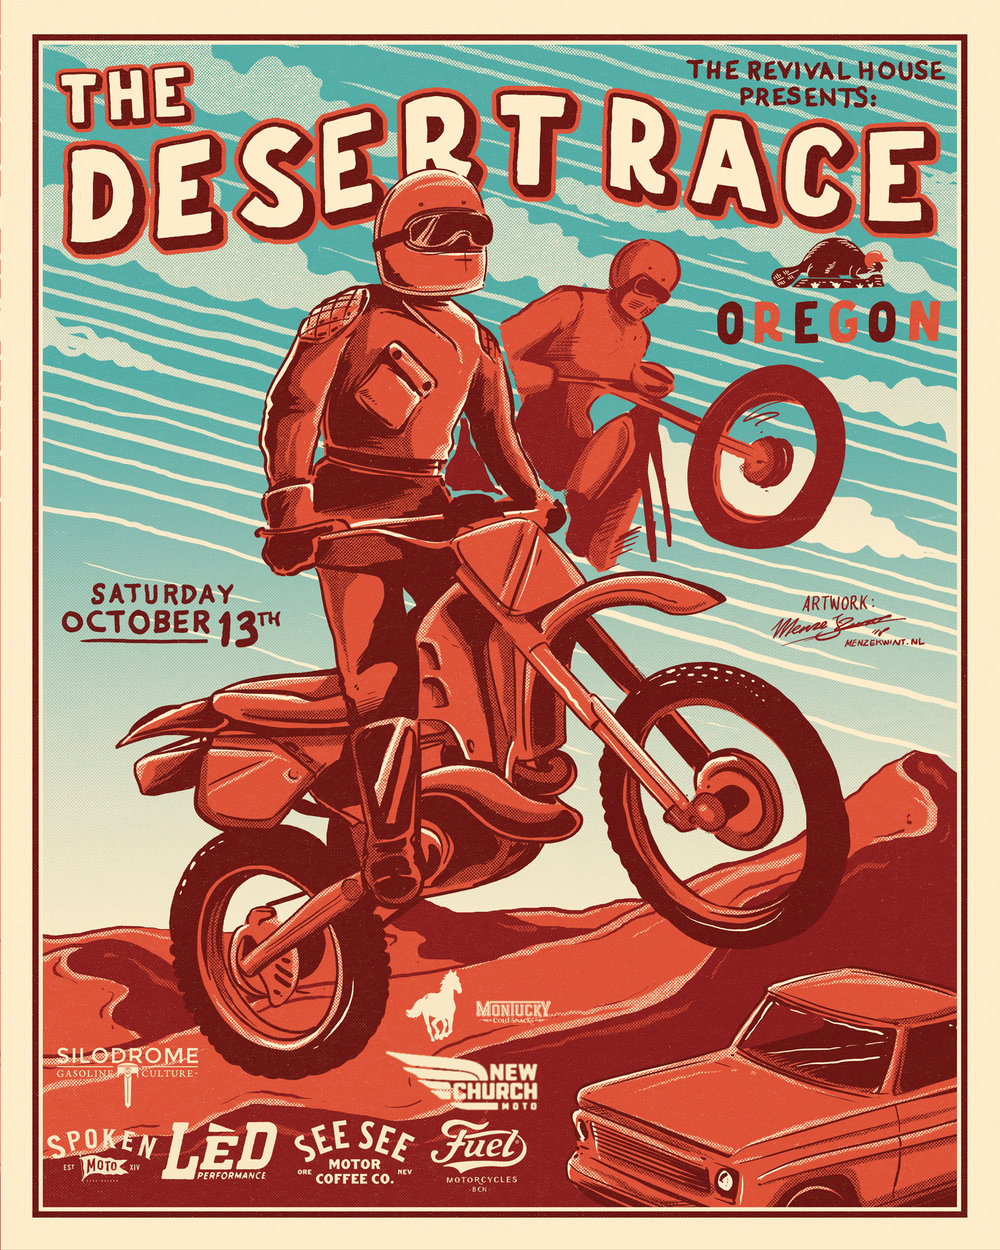 Final_Poster_The_Desert_Race_The_Revival_House_EE_Oregon_Poster_A42.jpg